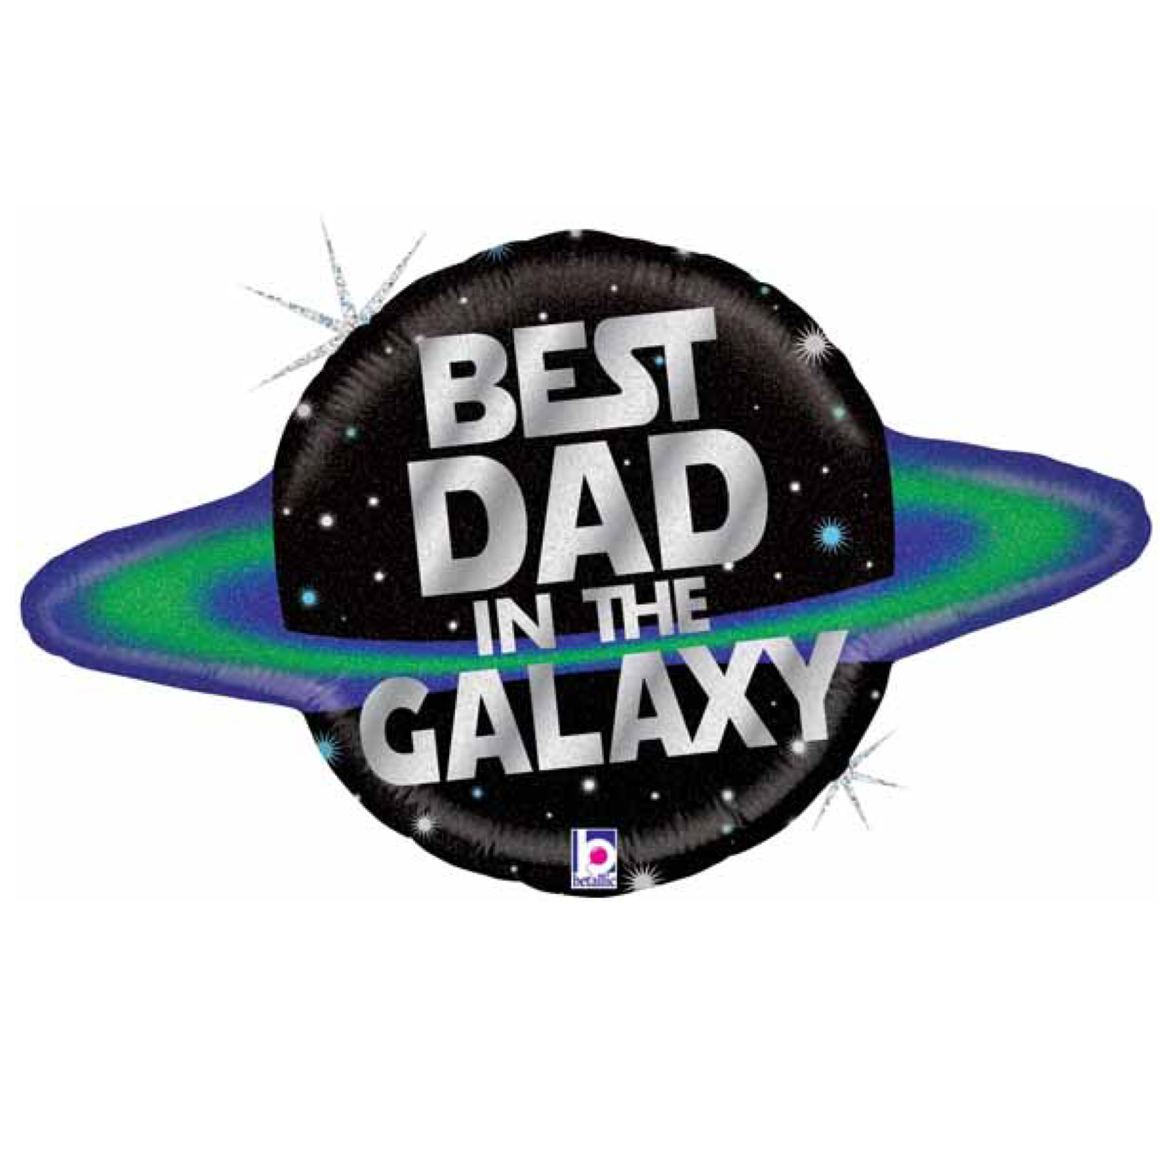 BALLOONS - GALACTIC DAD HOLOGRAPHIC